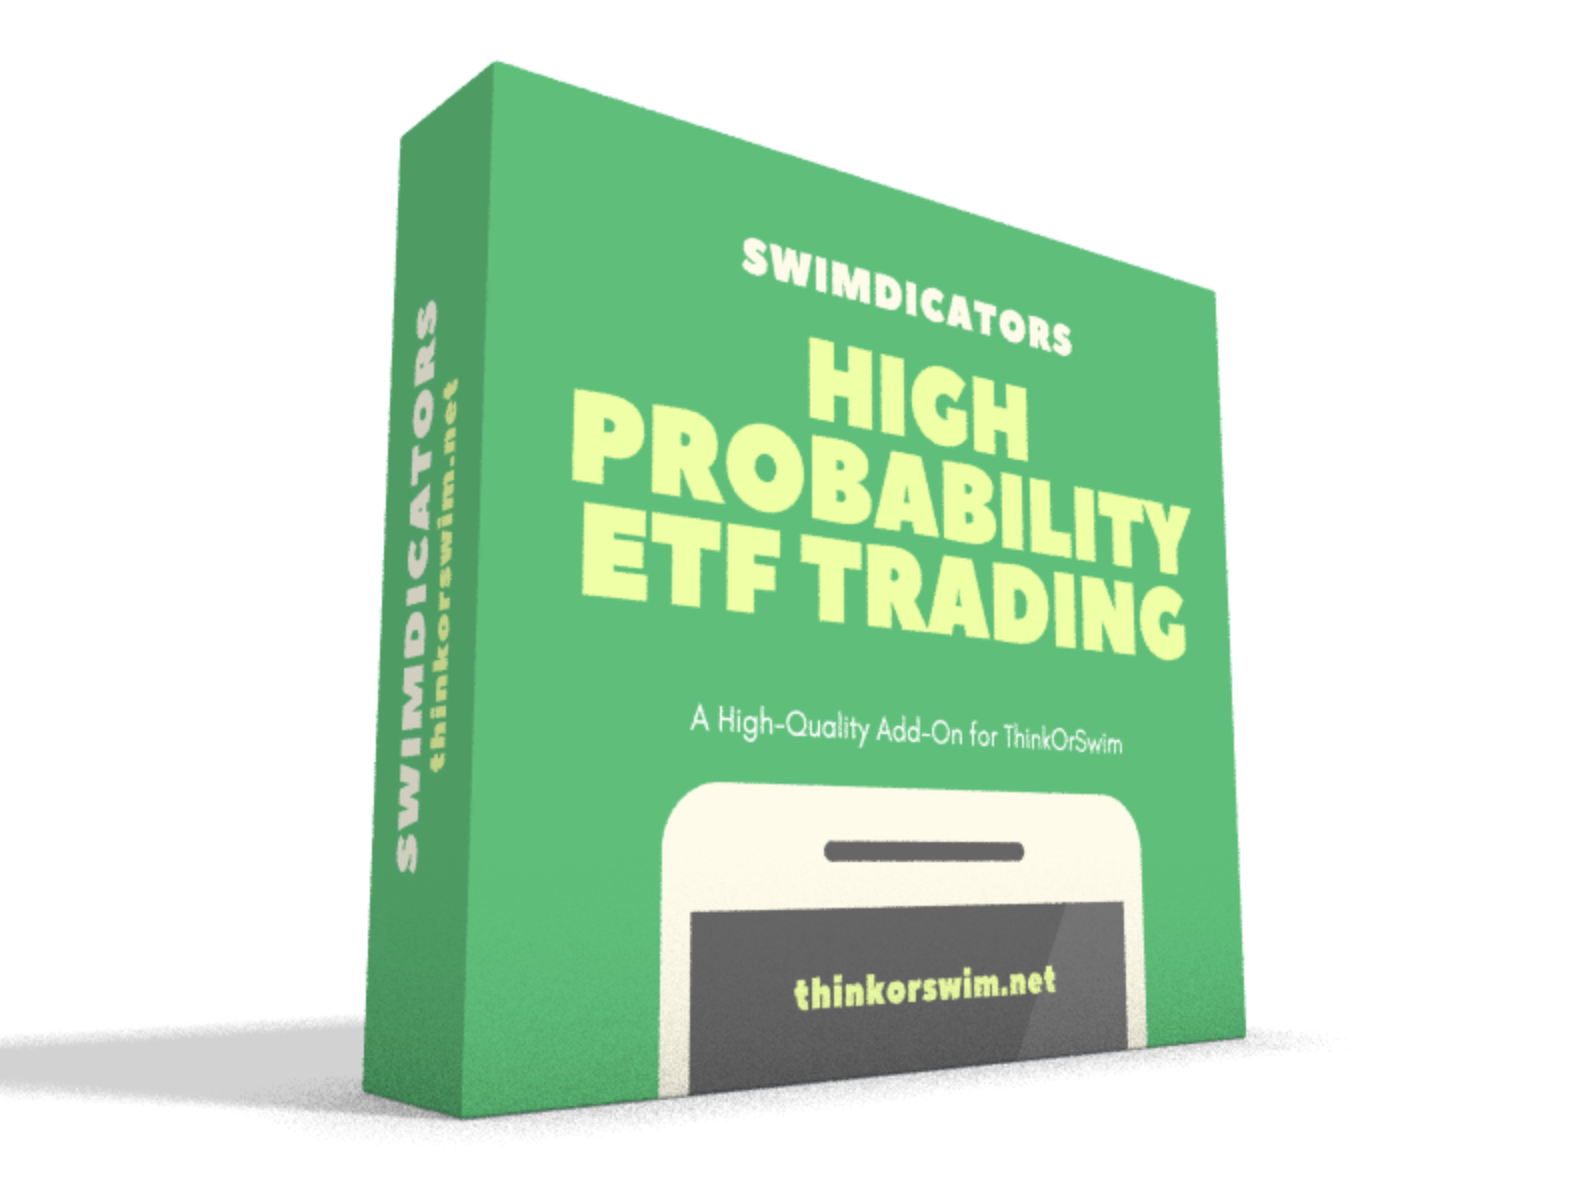 Gold etf trading strategies